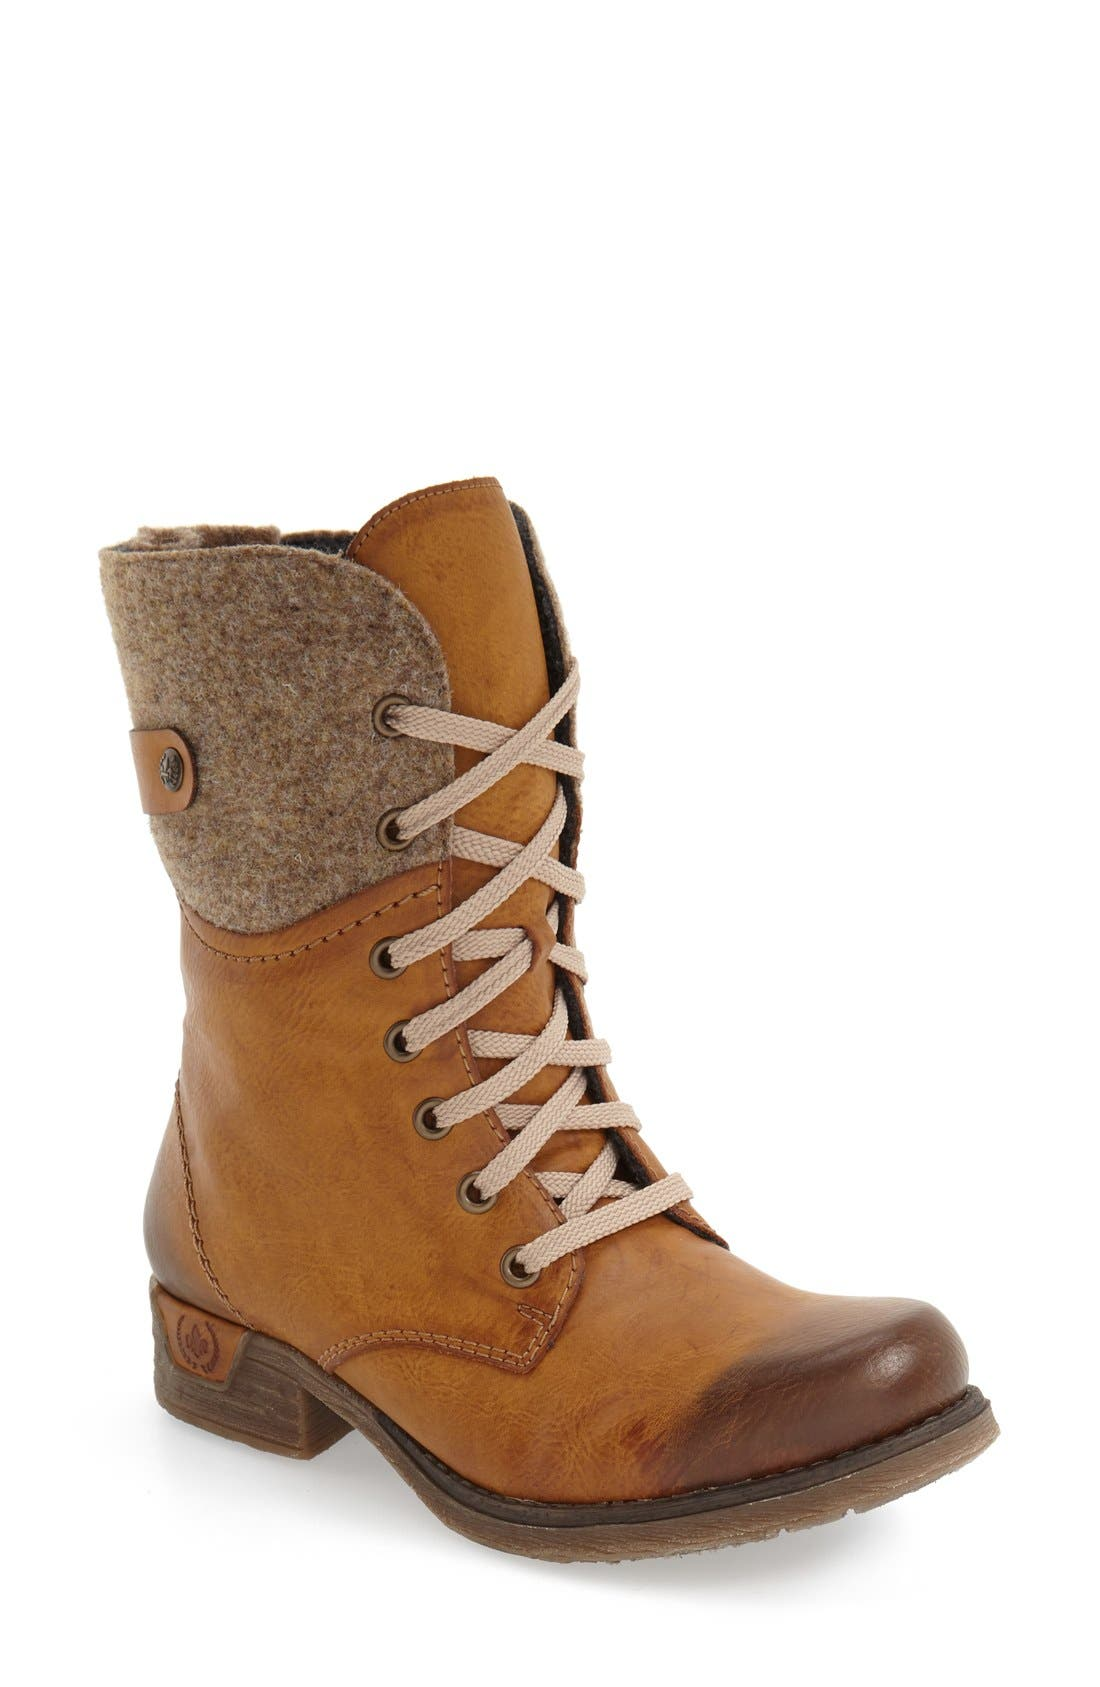 RIEKER ANTISTRESS 'Fee 04' Lace-Up Boot, Main, color, BROWN FAUX LEATHER